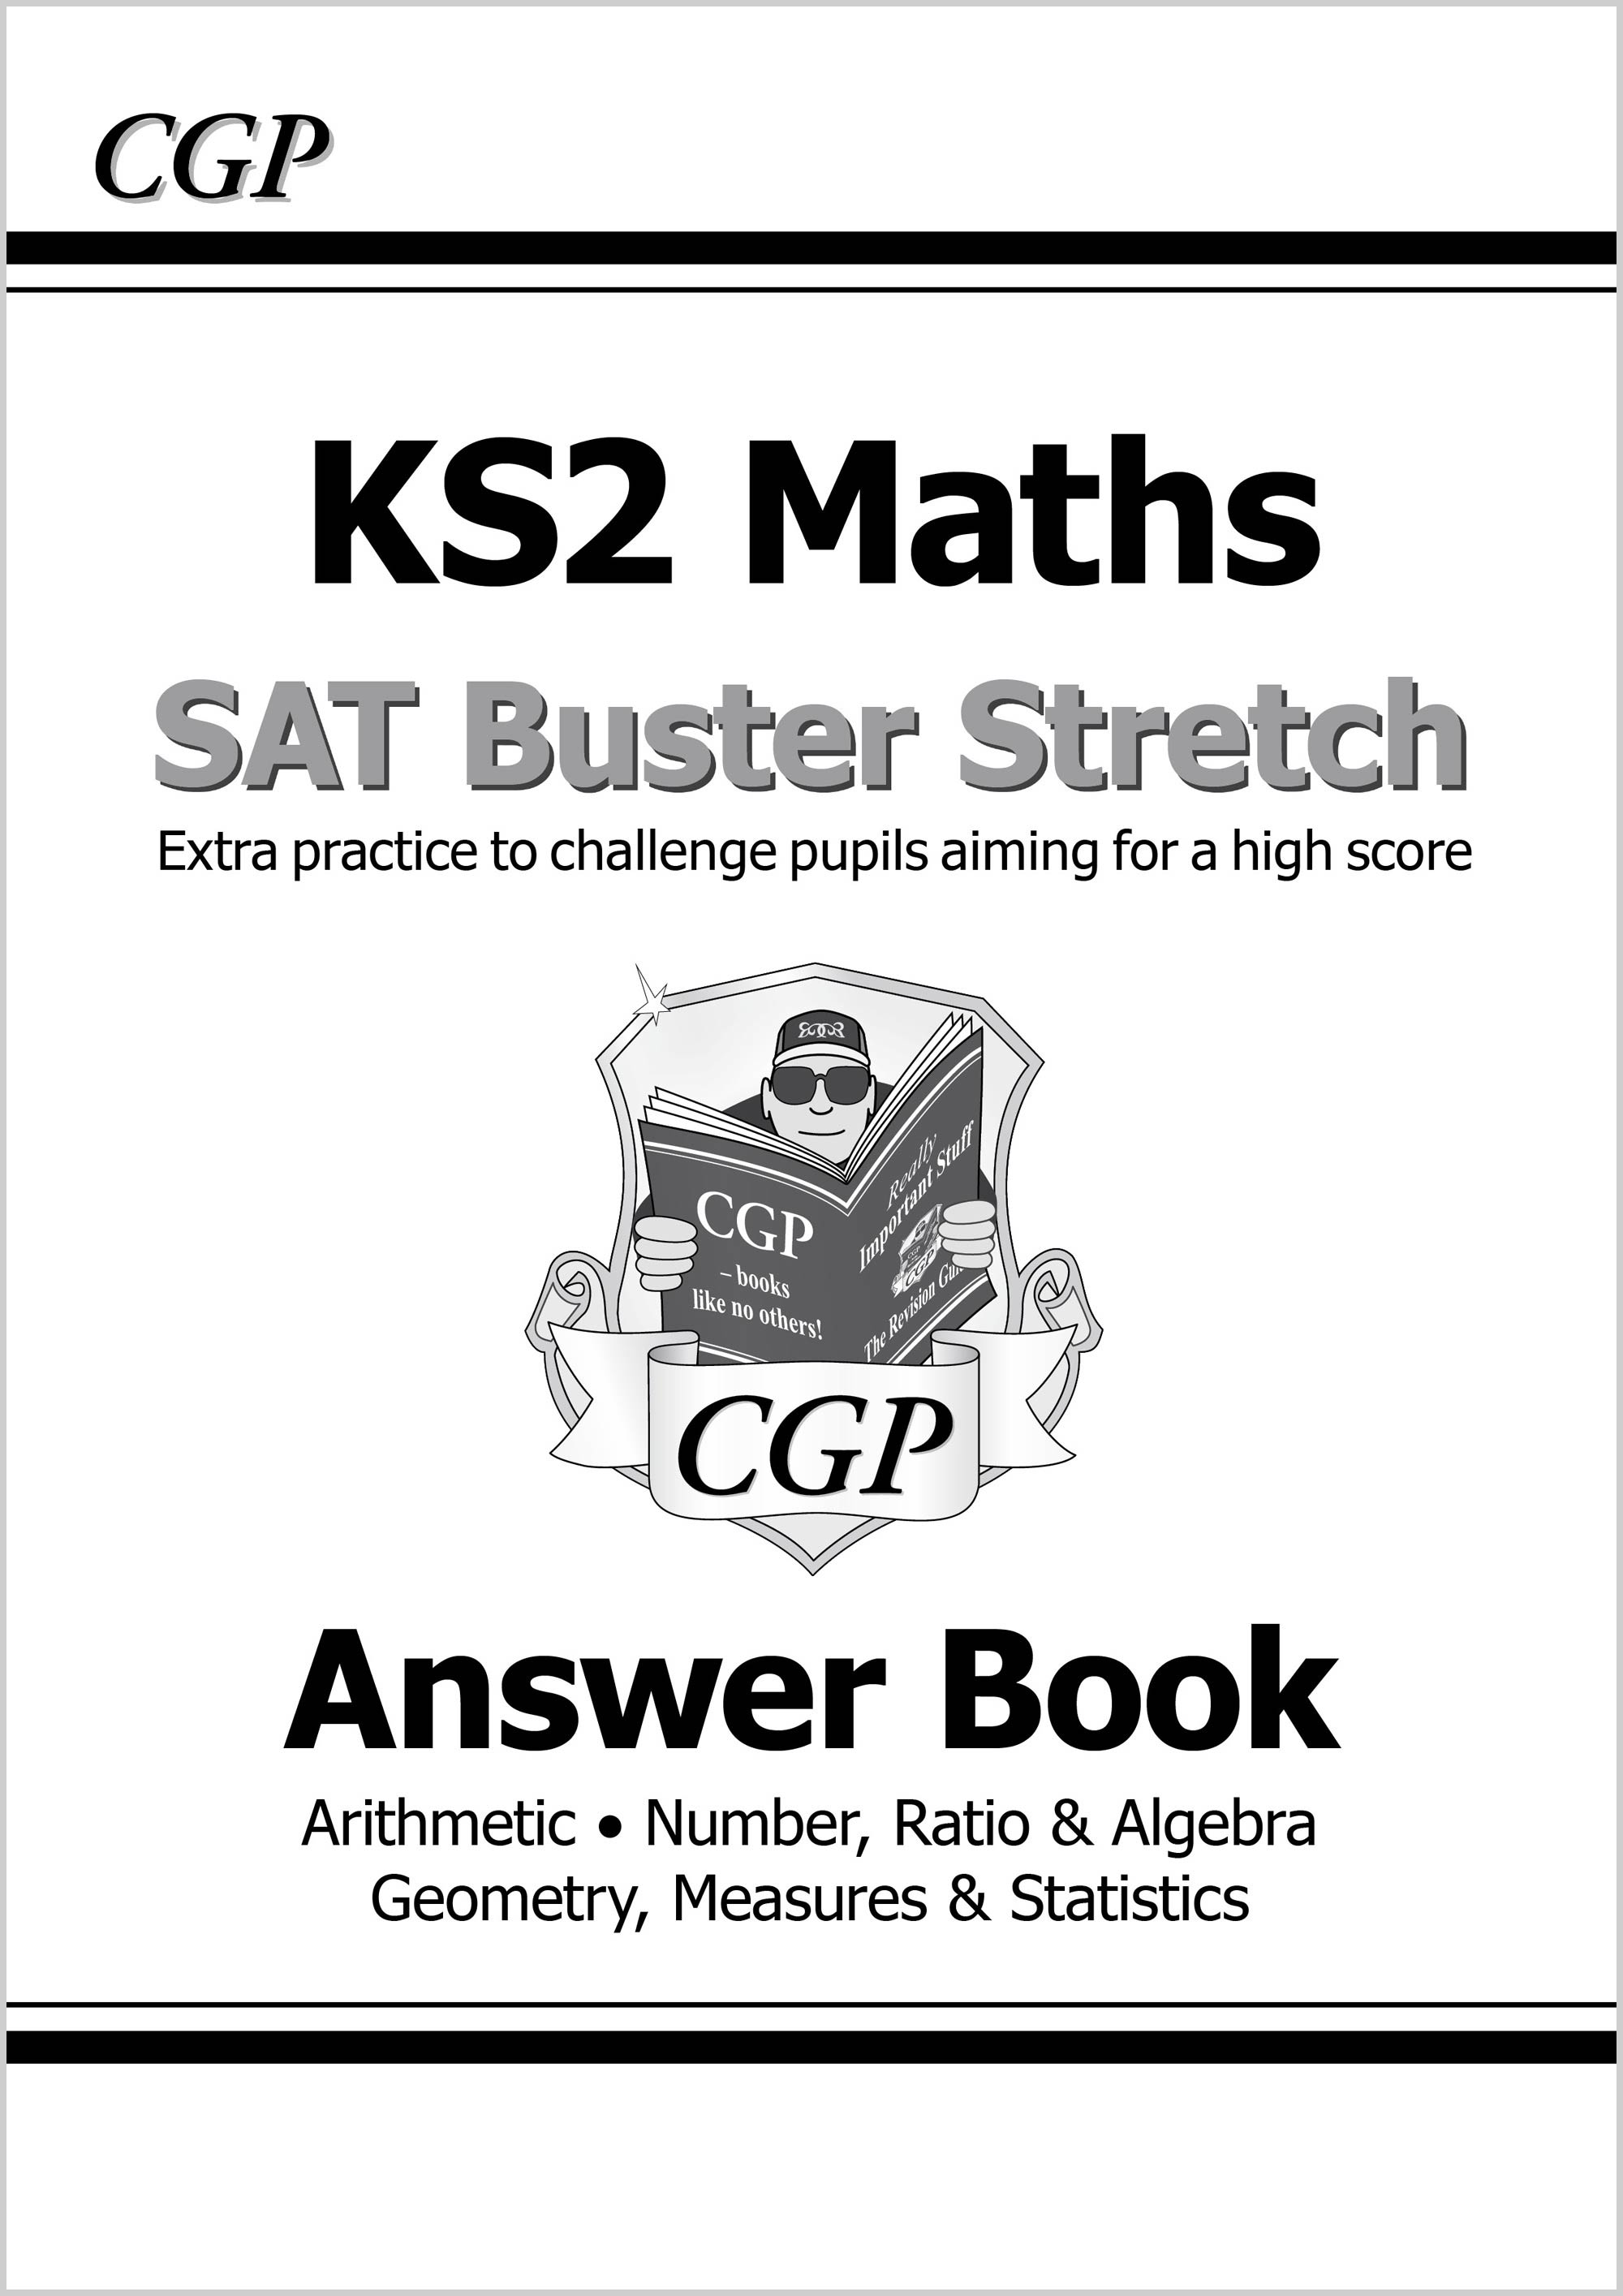 M6HA21 - New KS2 Maths SAT Buster Stretch: Answer Book (for the 2019 tests)